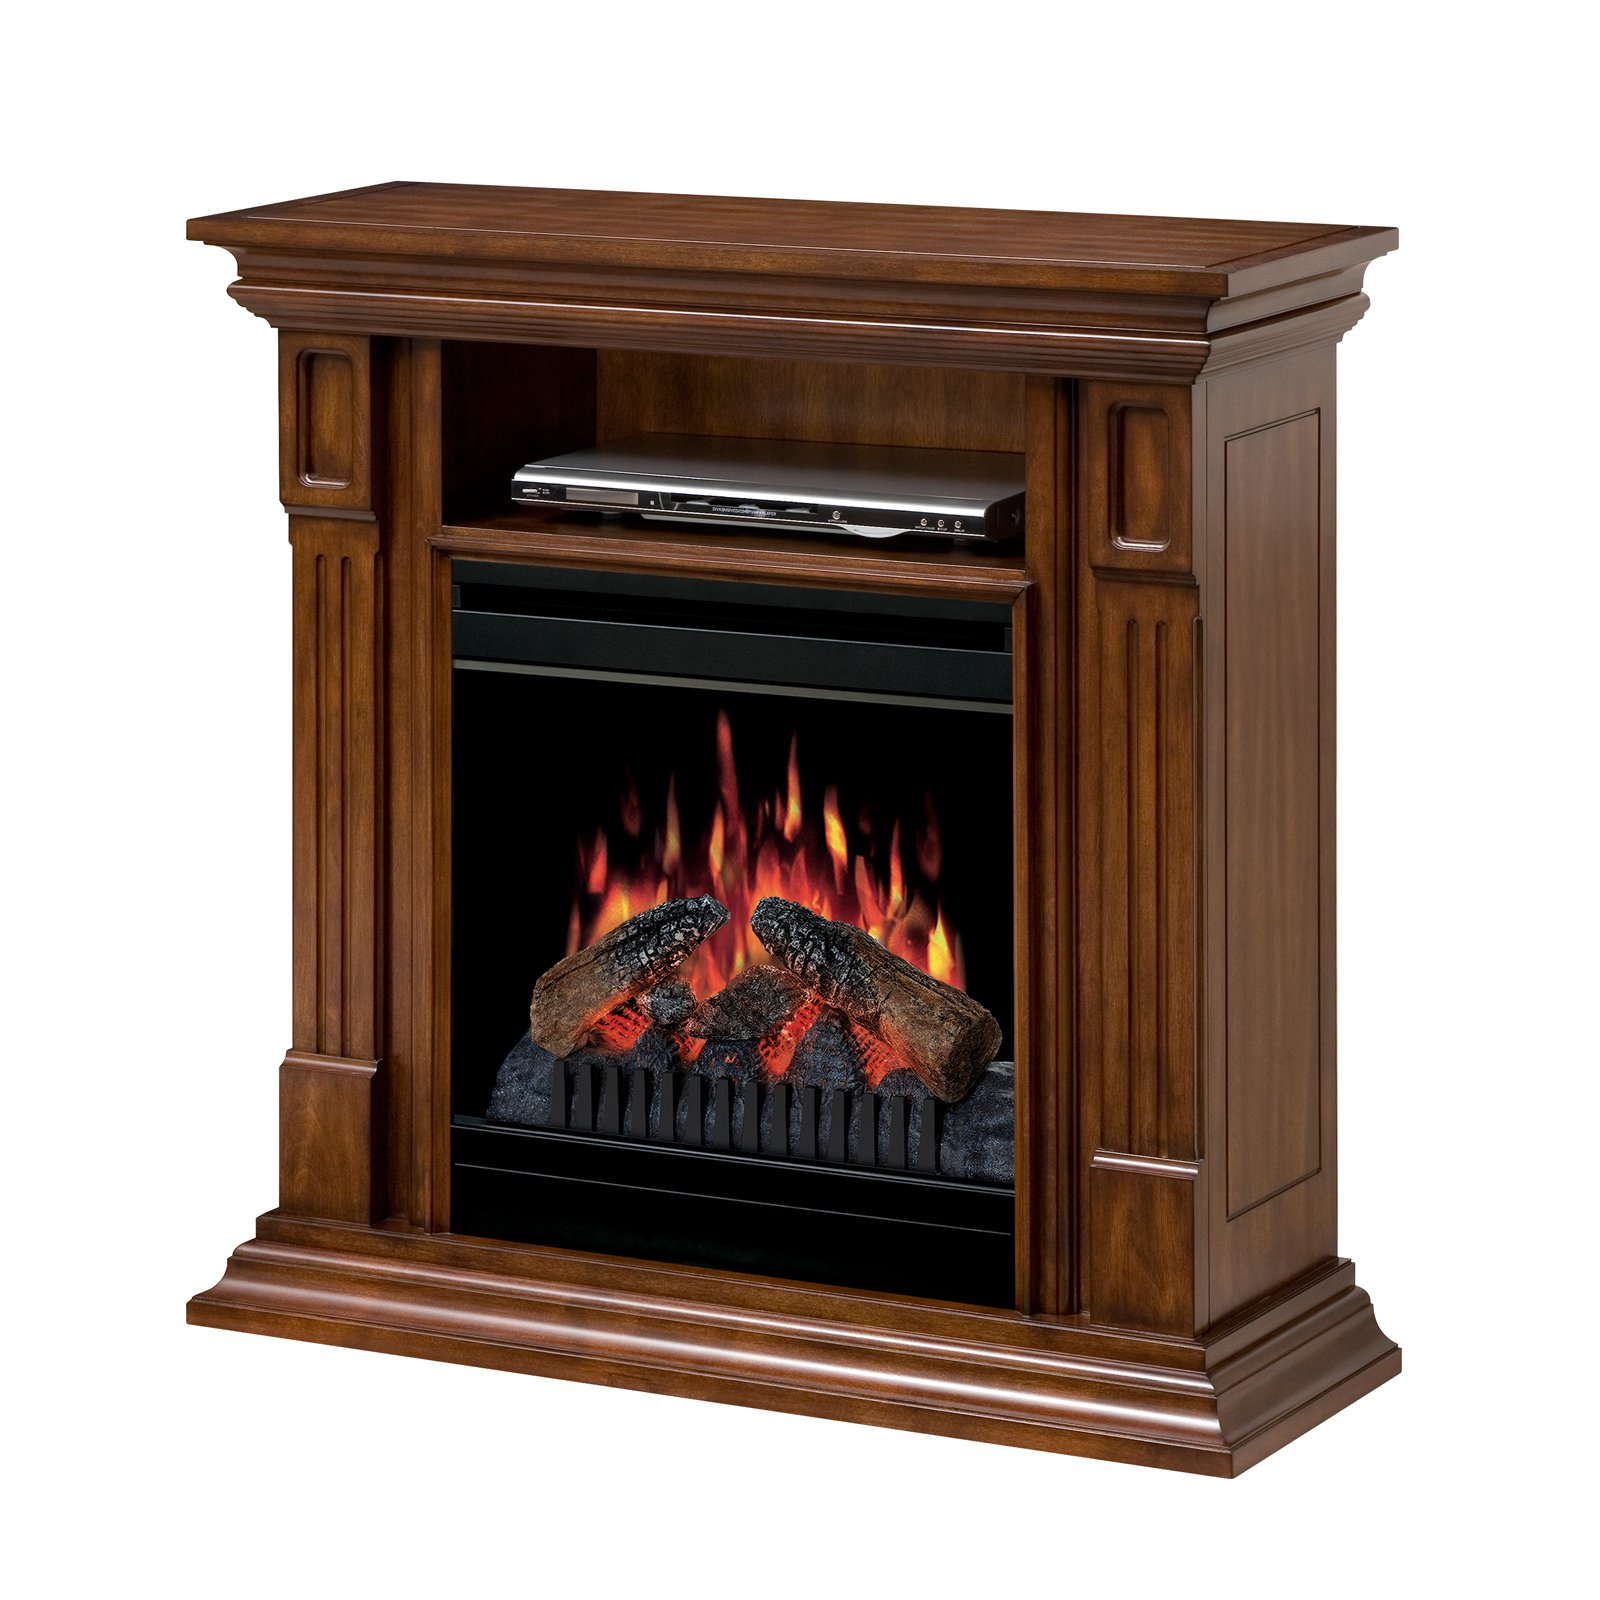 "Dimplex Deerhurst Media Console Electric Fireplace With Logs for TVs up to 36"", Burnished Walnut"